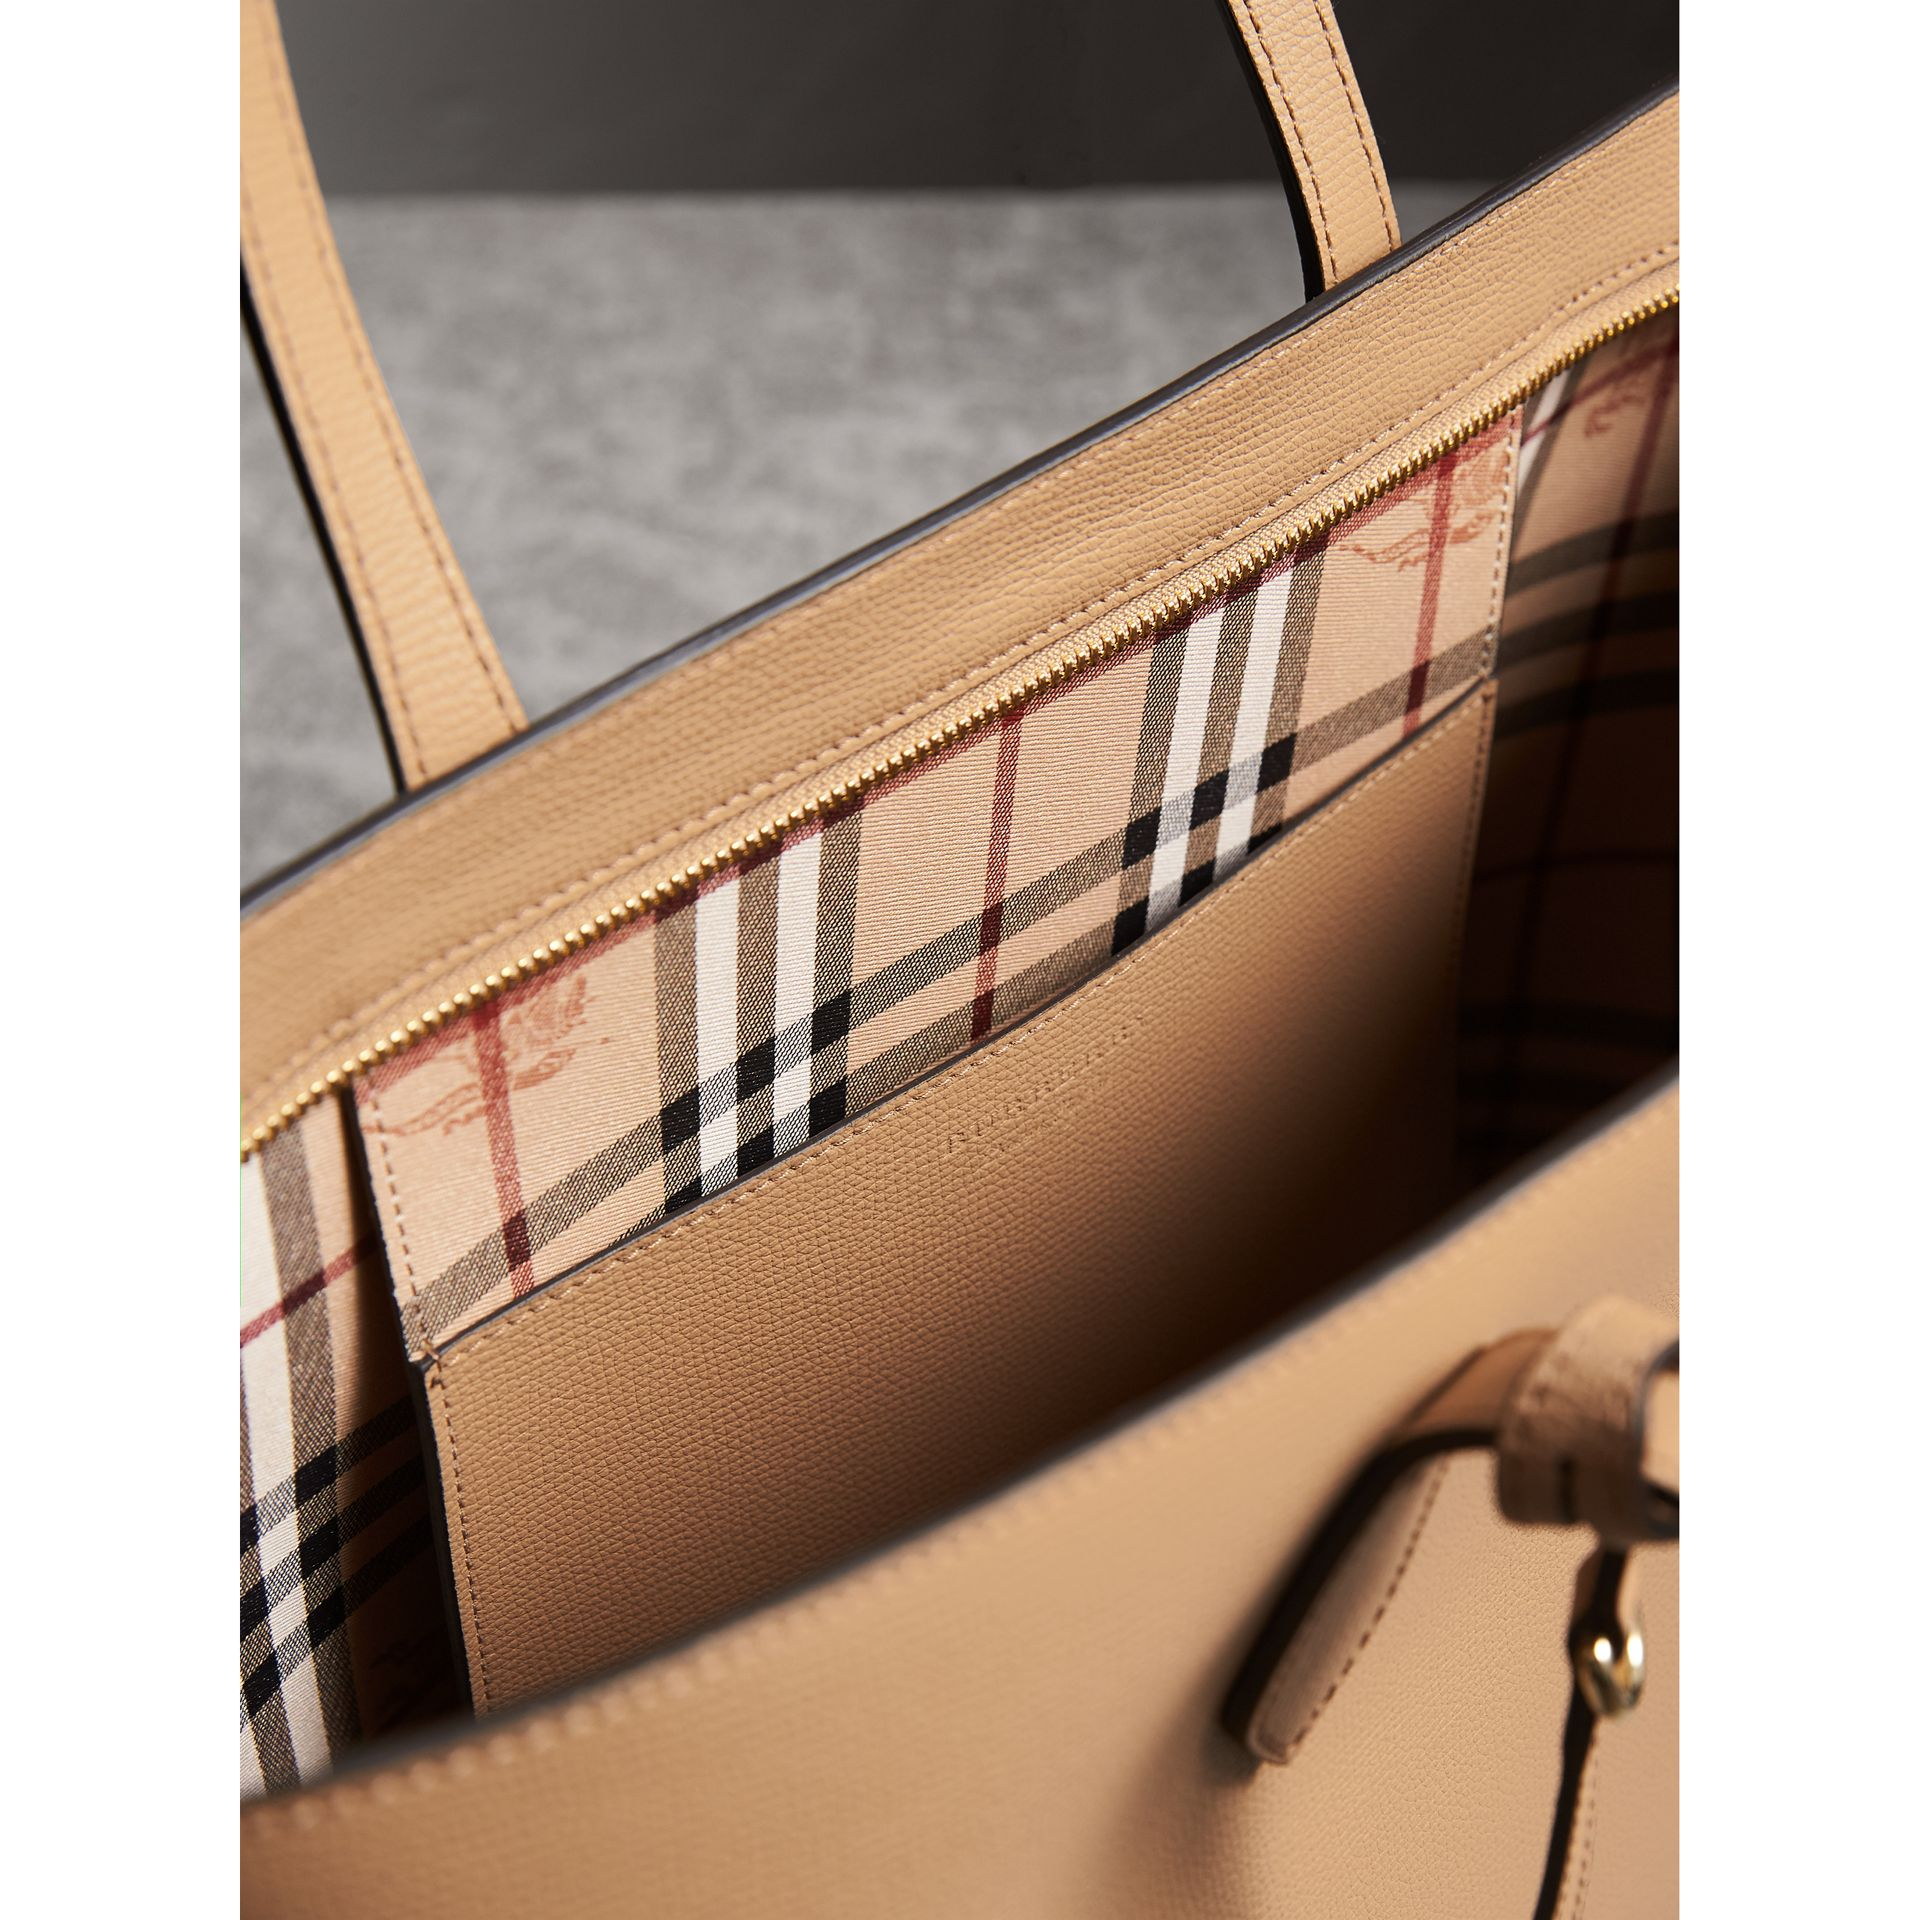 Medium Coated Leather Tote in Mid Camel - Women | Burberry Australia - gallery image 5